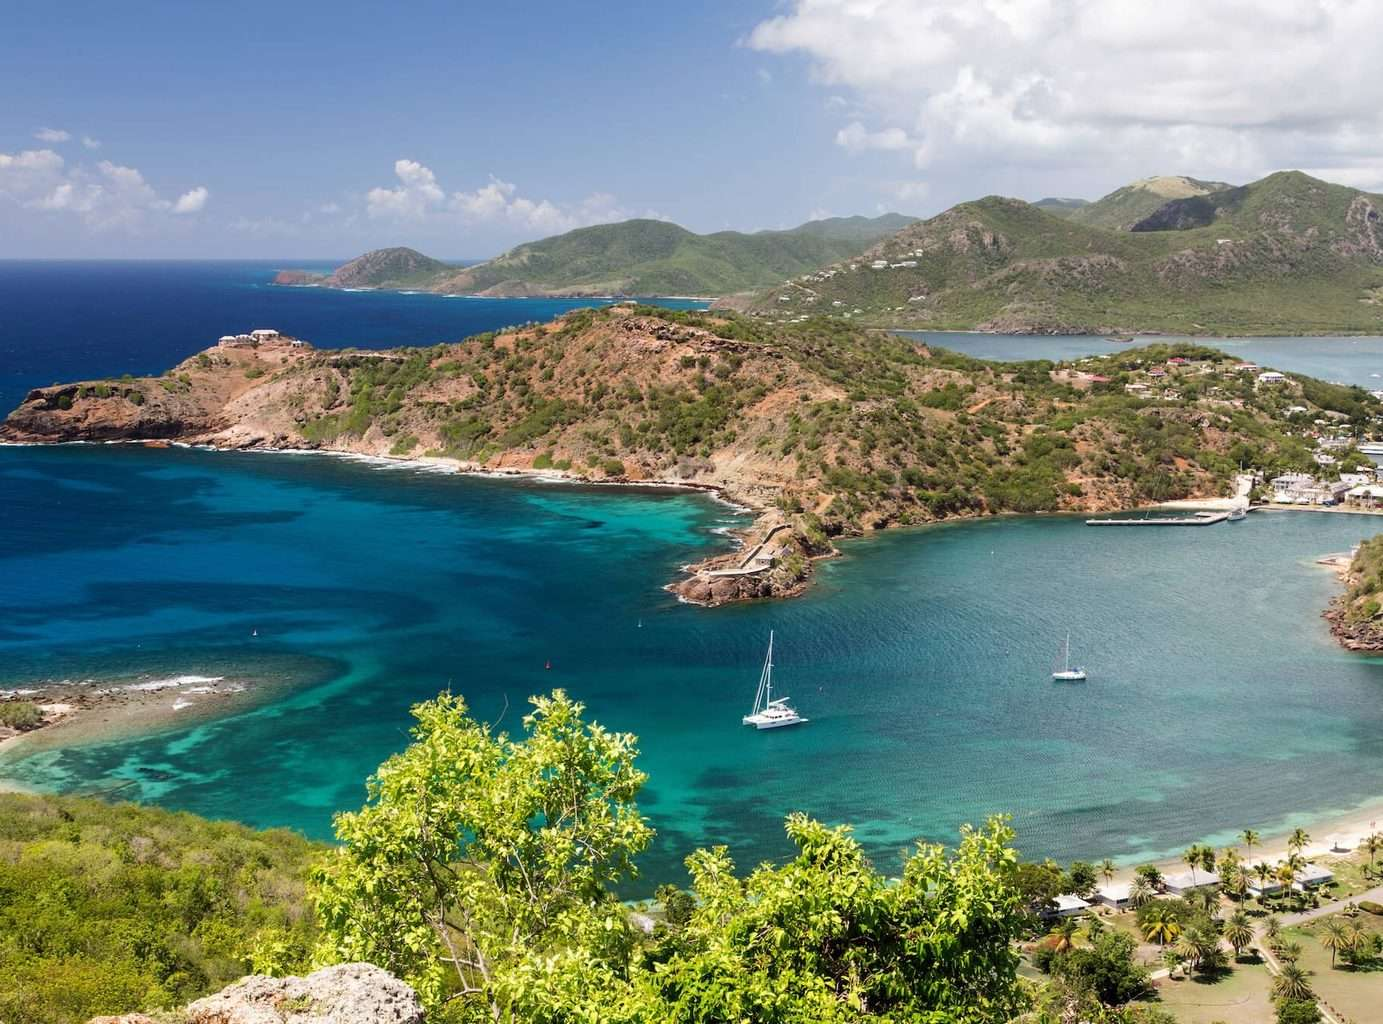 Luxury Holiday to Antigua - View of the land and sea at The Inn at English Harbour in Antigua